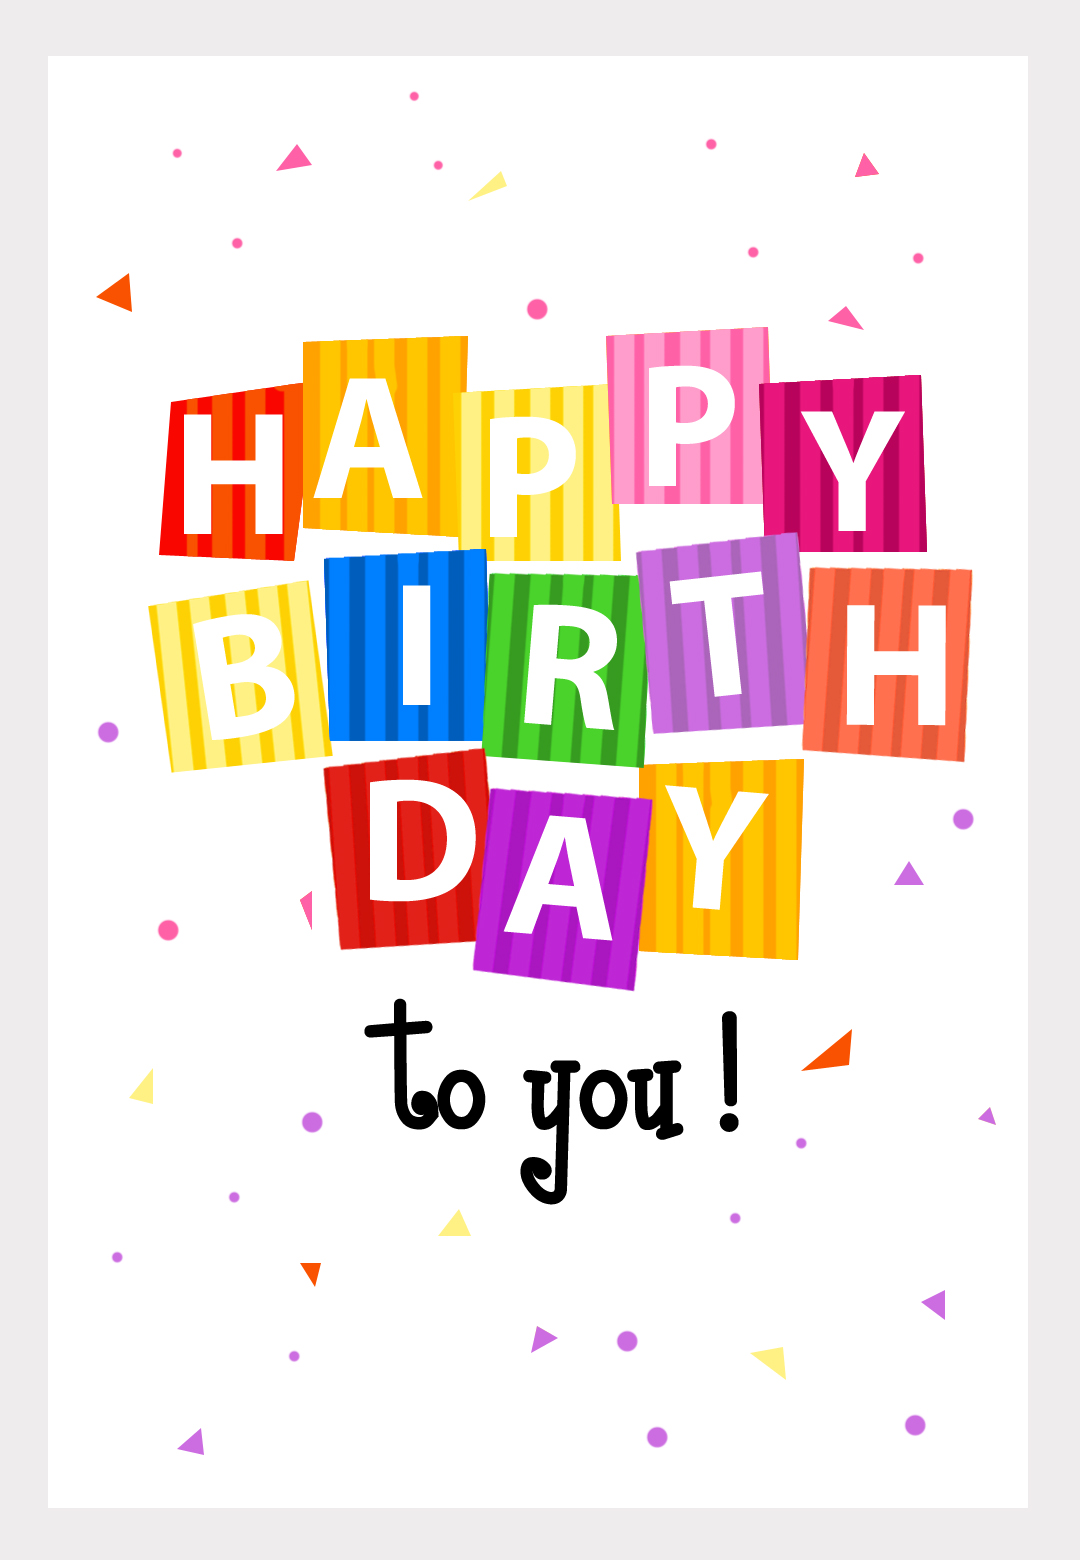 free birthday cards to print out ; 96b6617a02cb5ed3f32d726d58e2157c